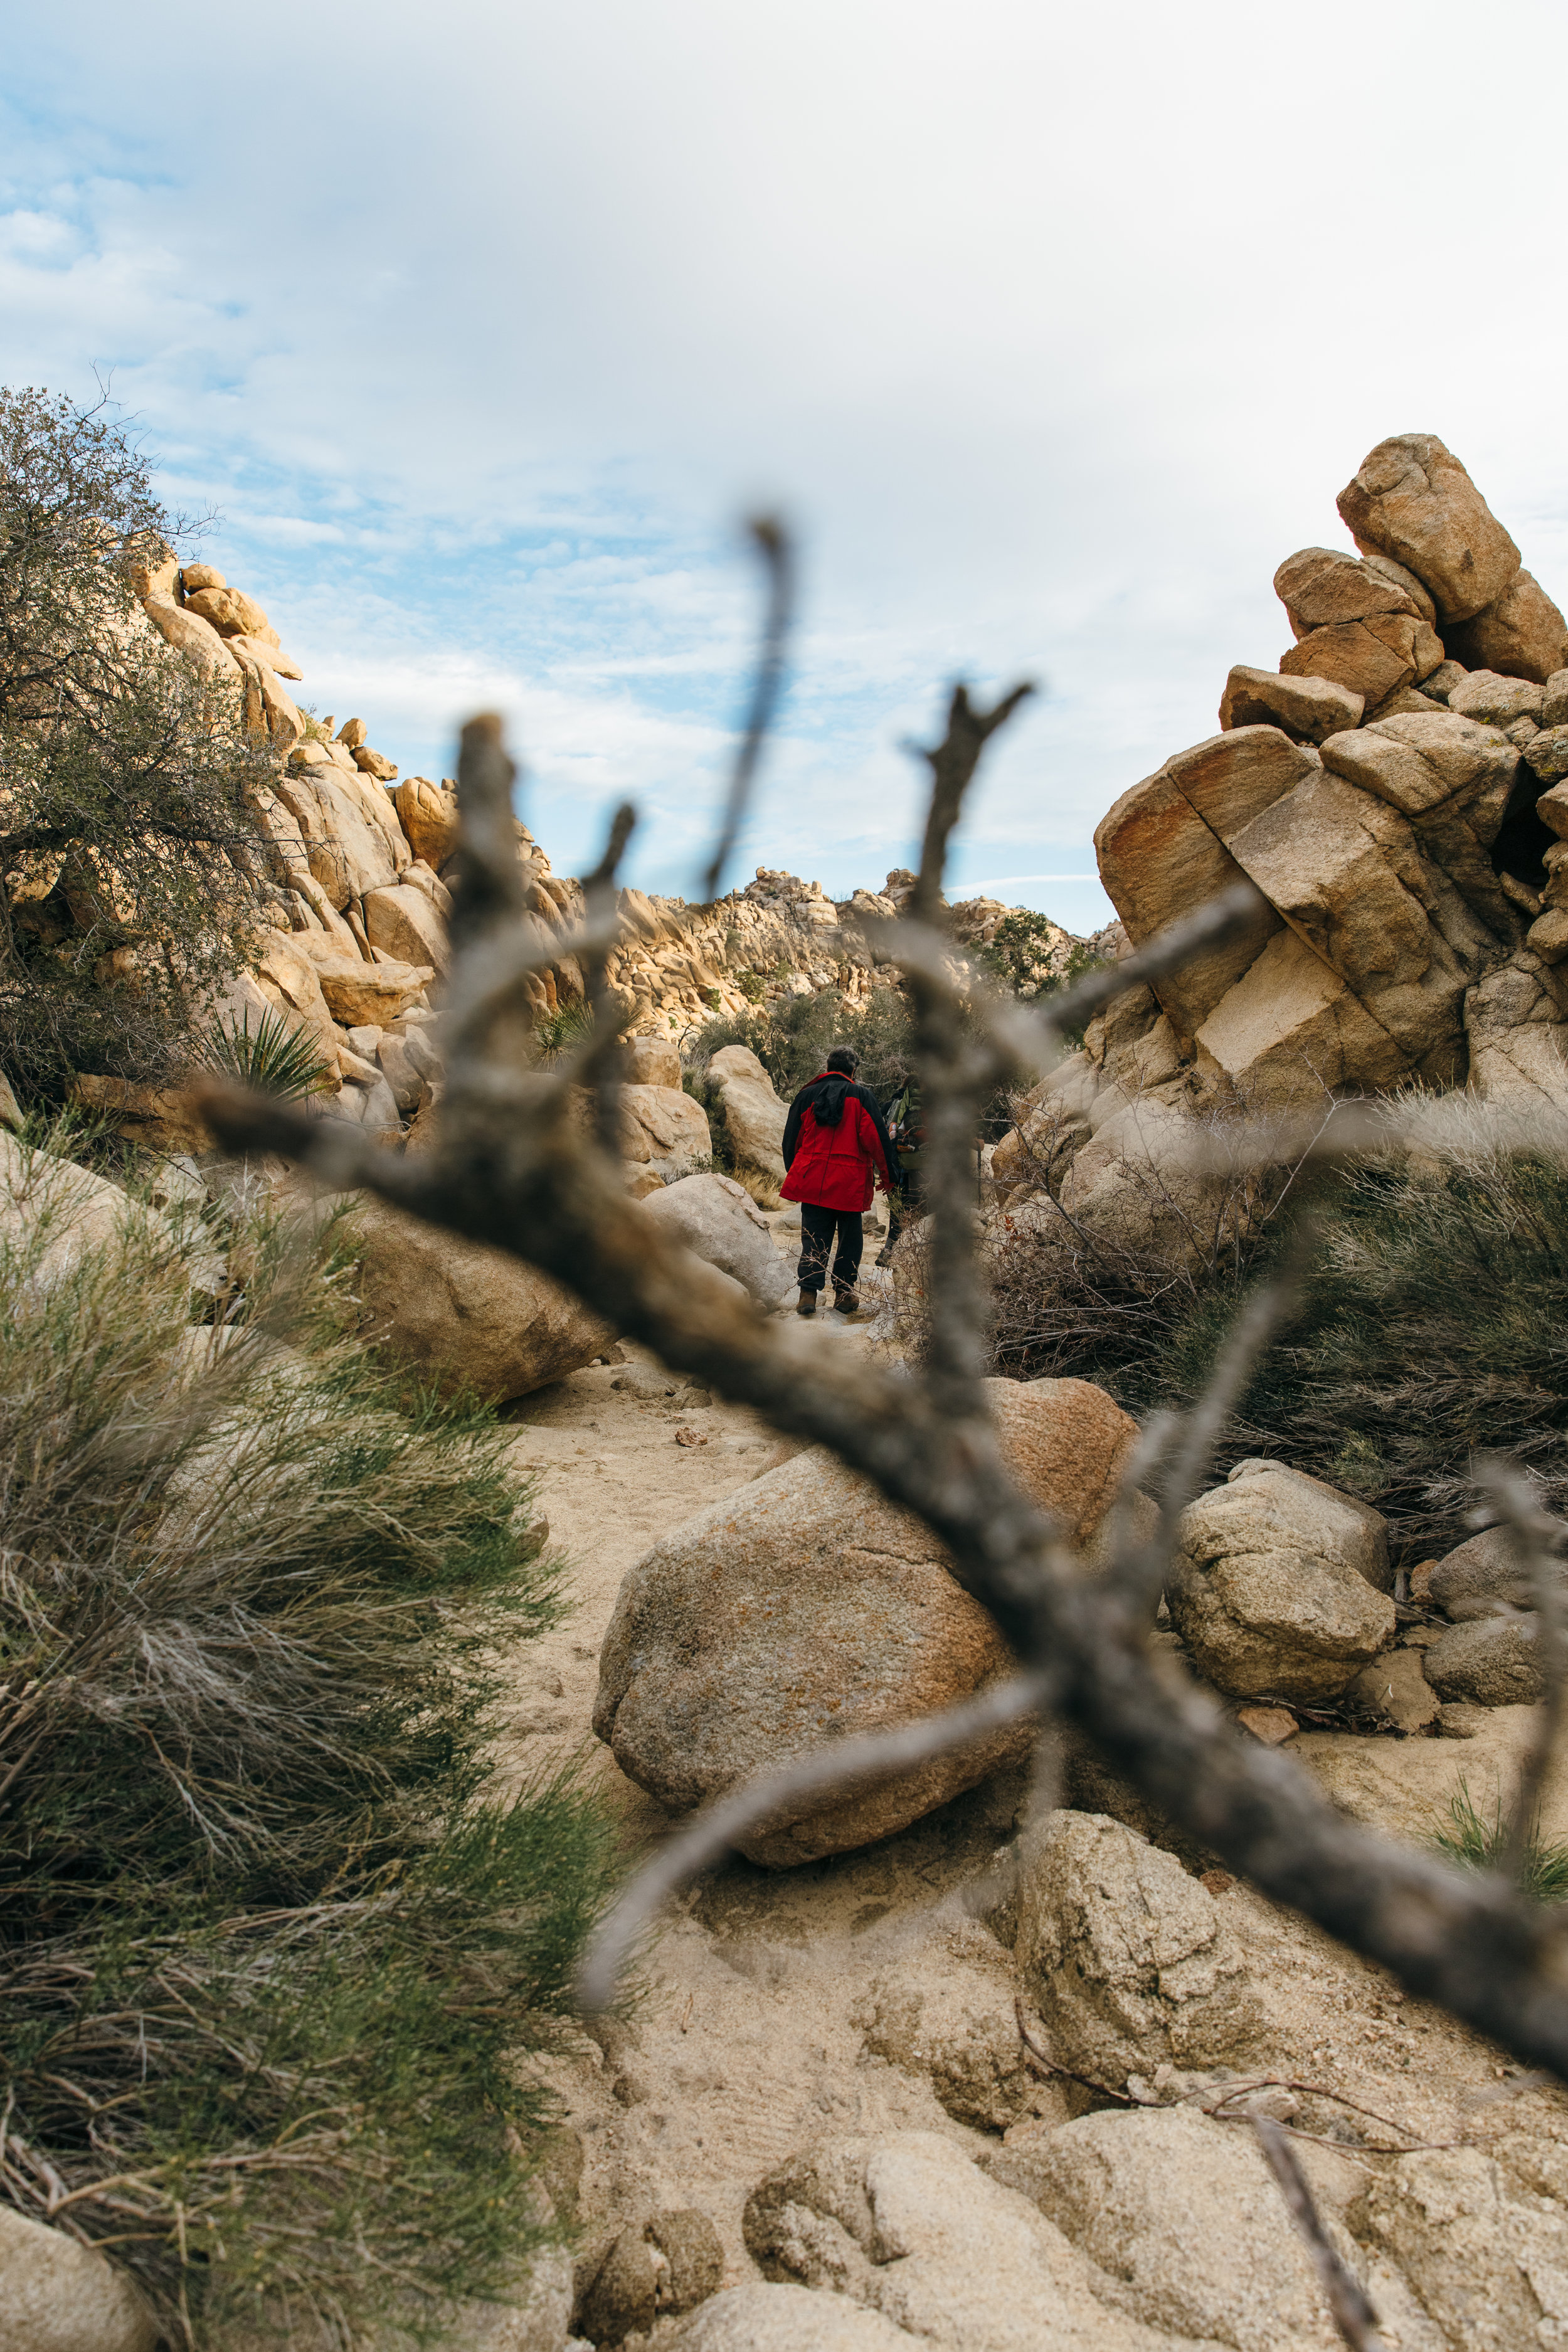 4 mile hike through the Wonderland of Rocks to Willow Hole, a desert oasis